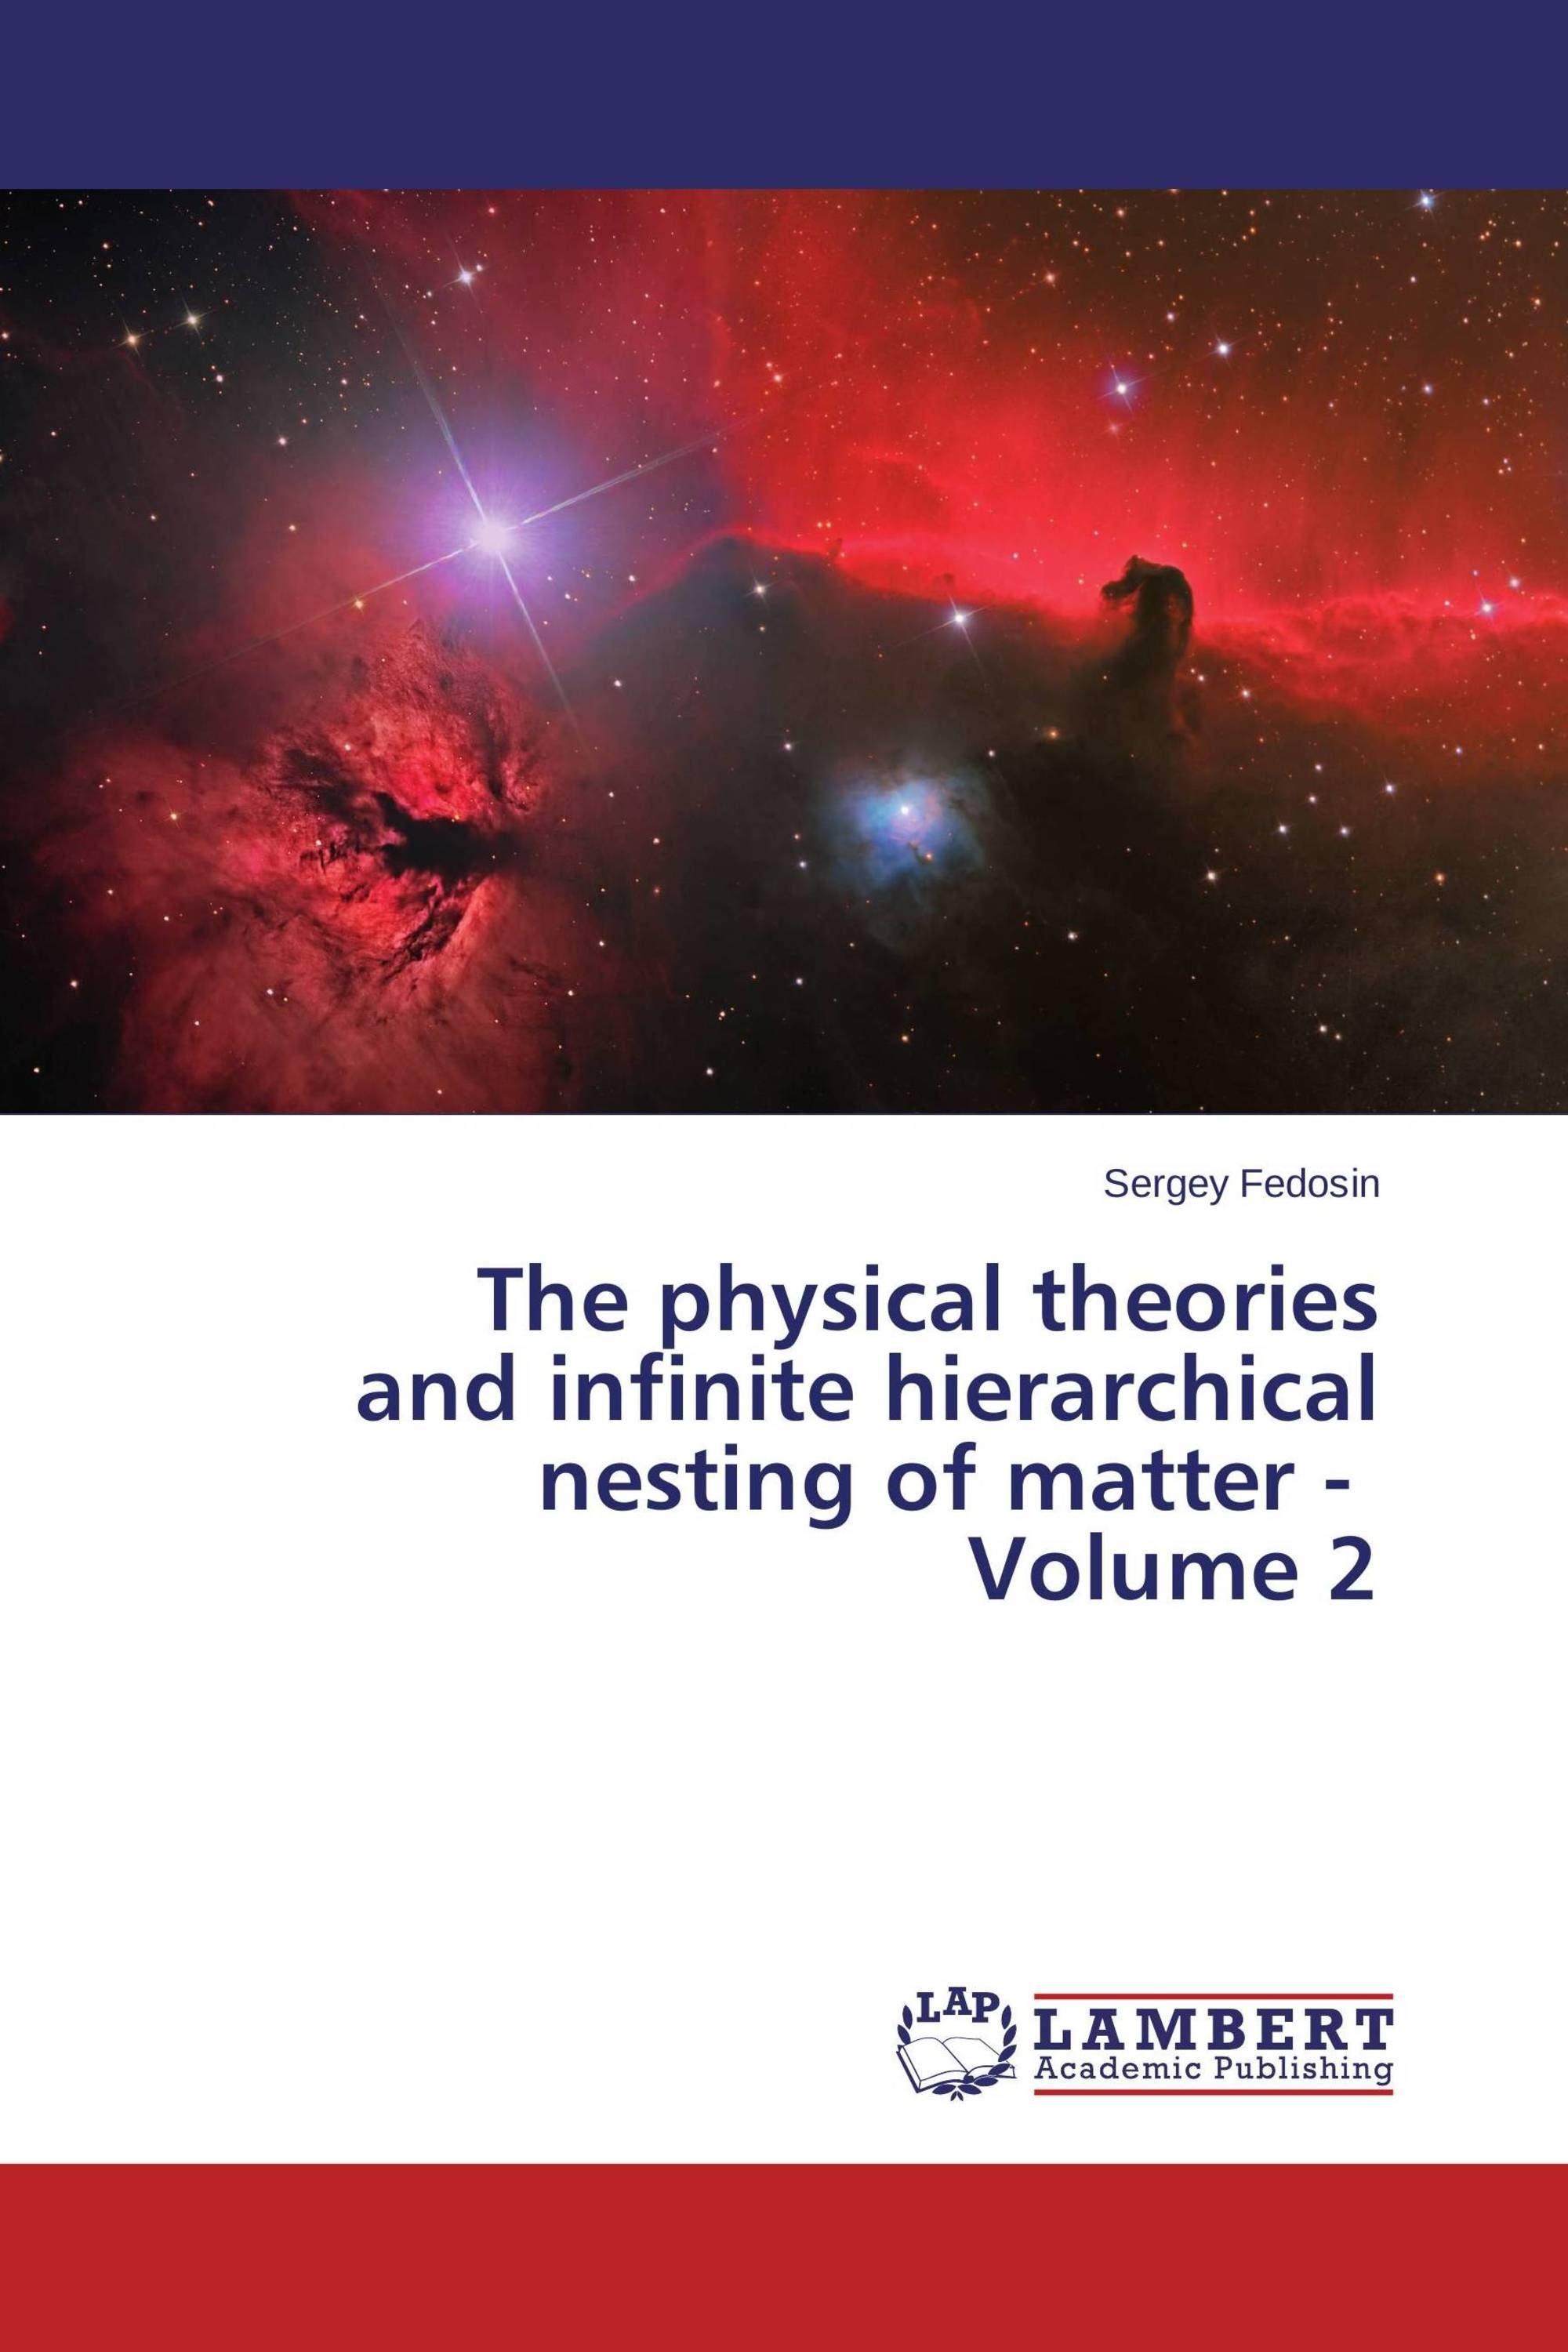 The physical theories and infinite hierarchical nesting of matter - Volume 2